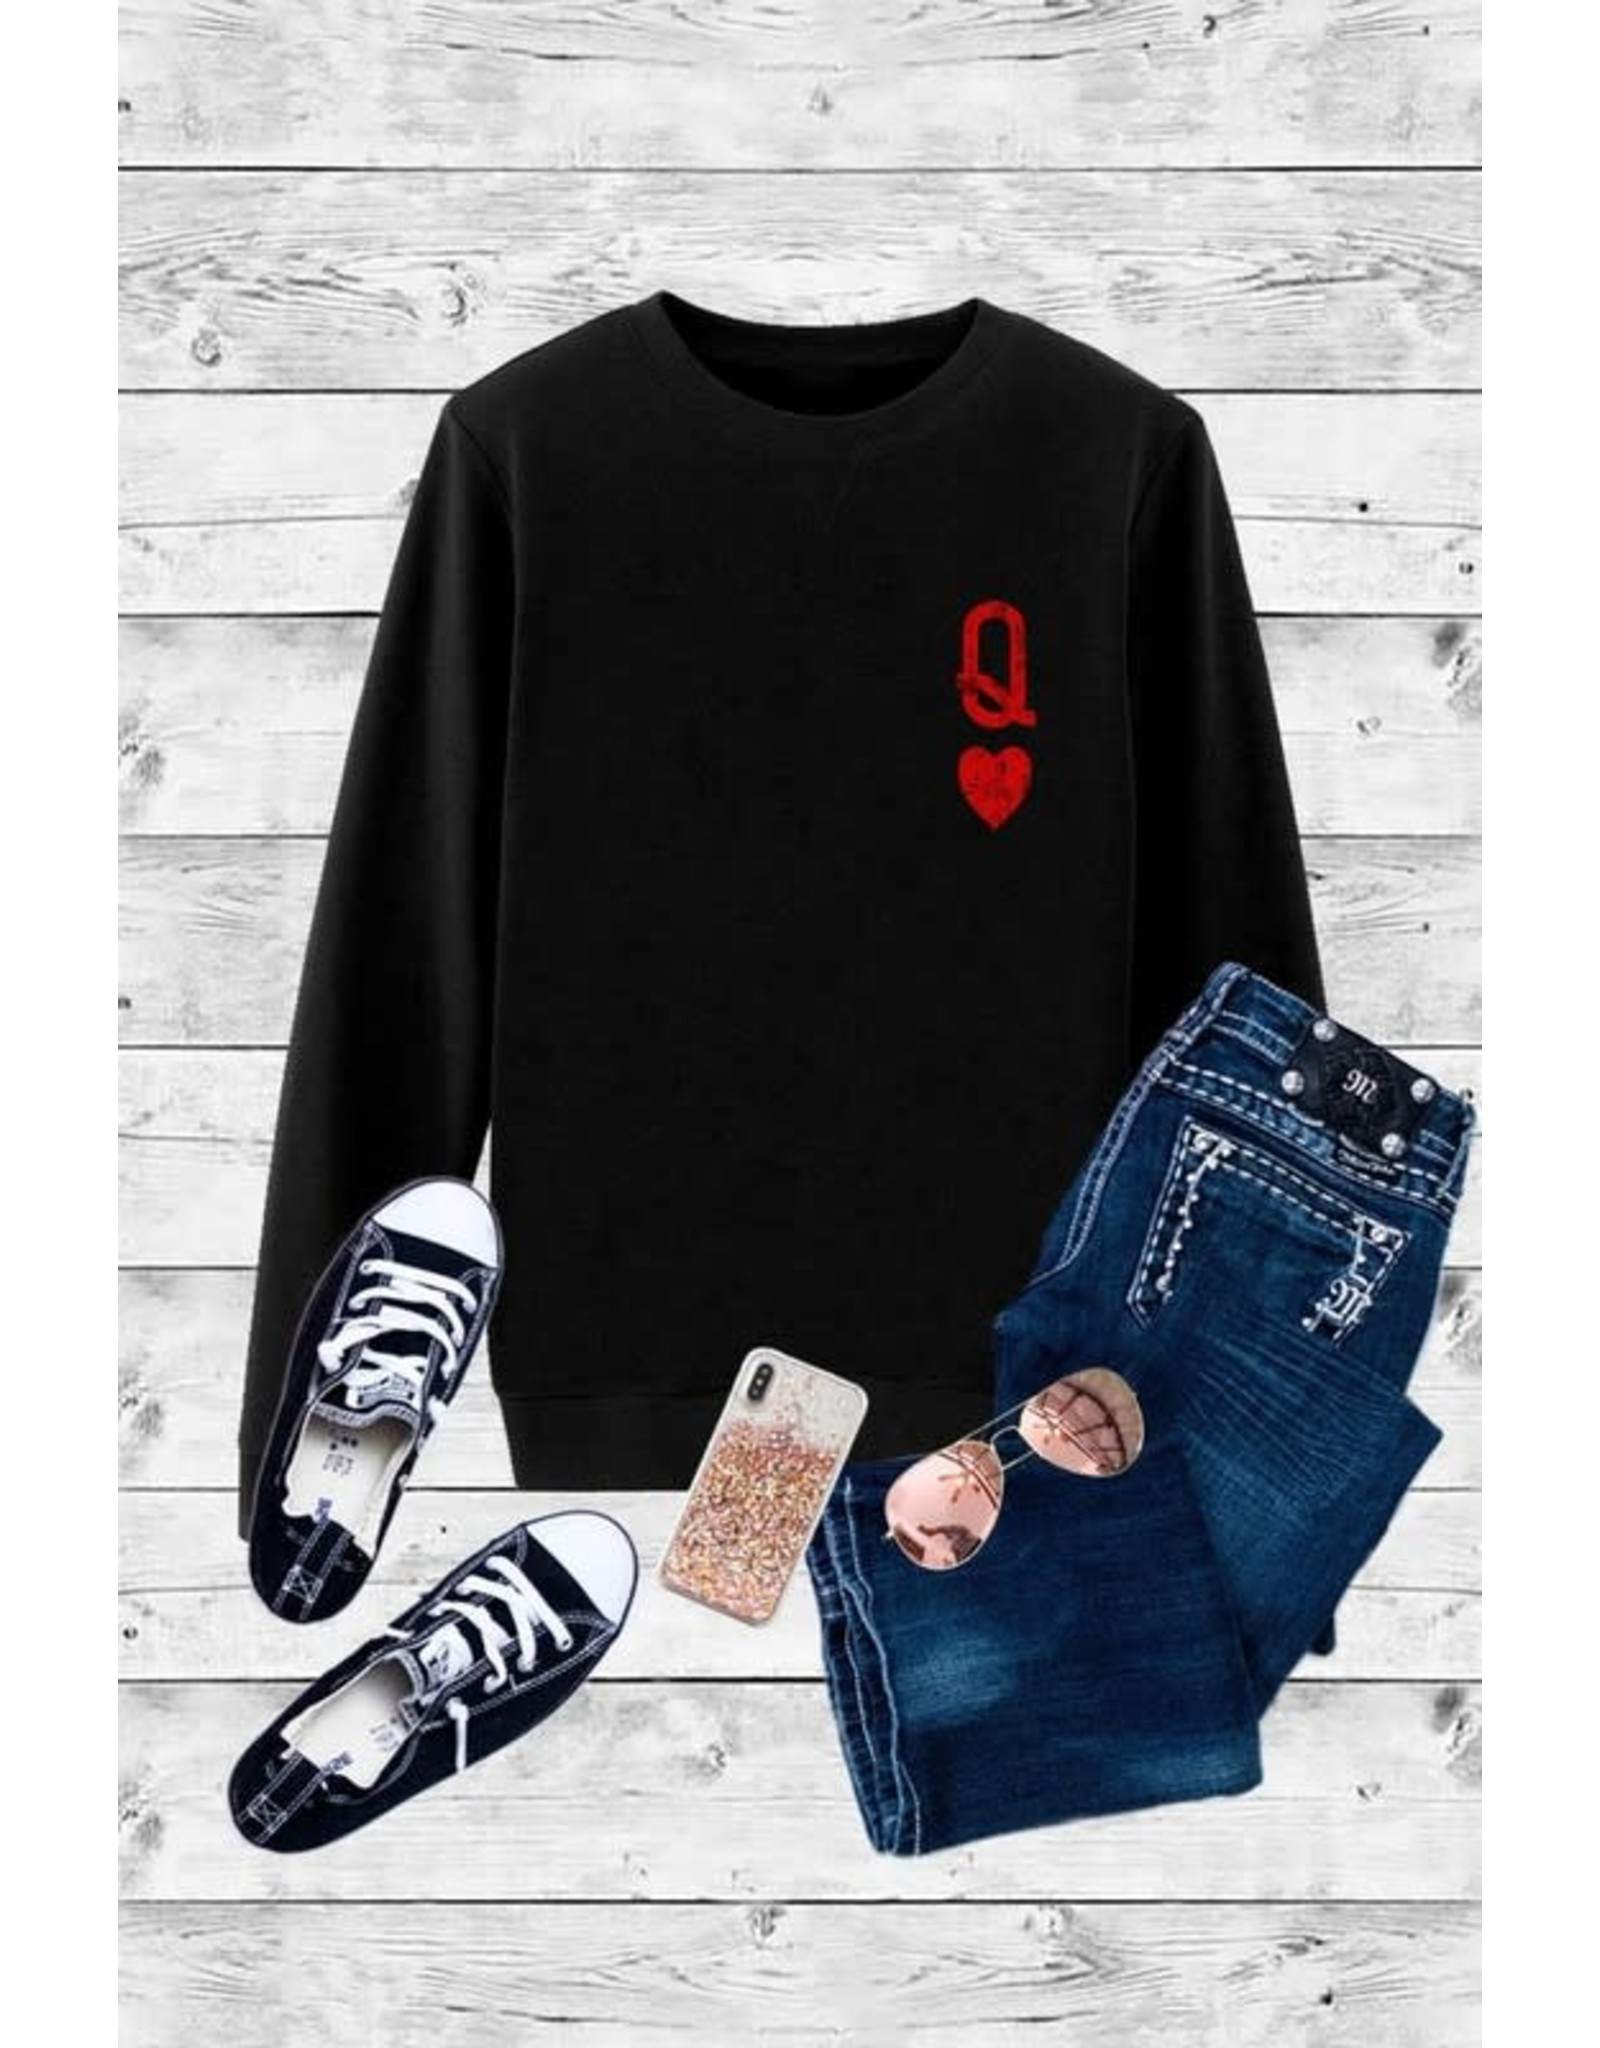 Relish Queen of Hearts Valentine Sweatshirt